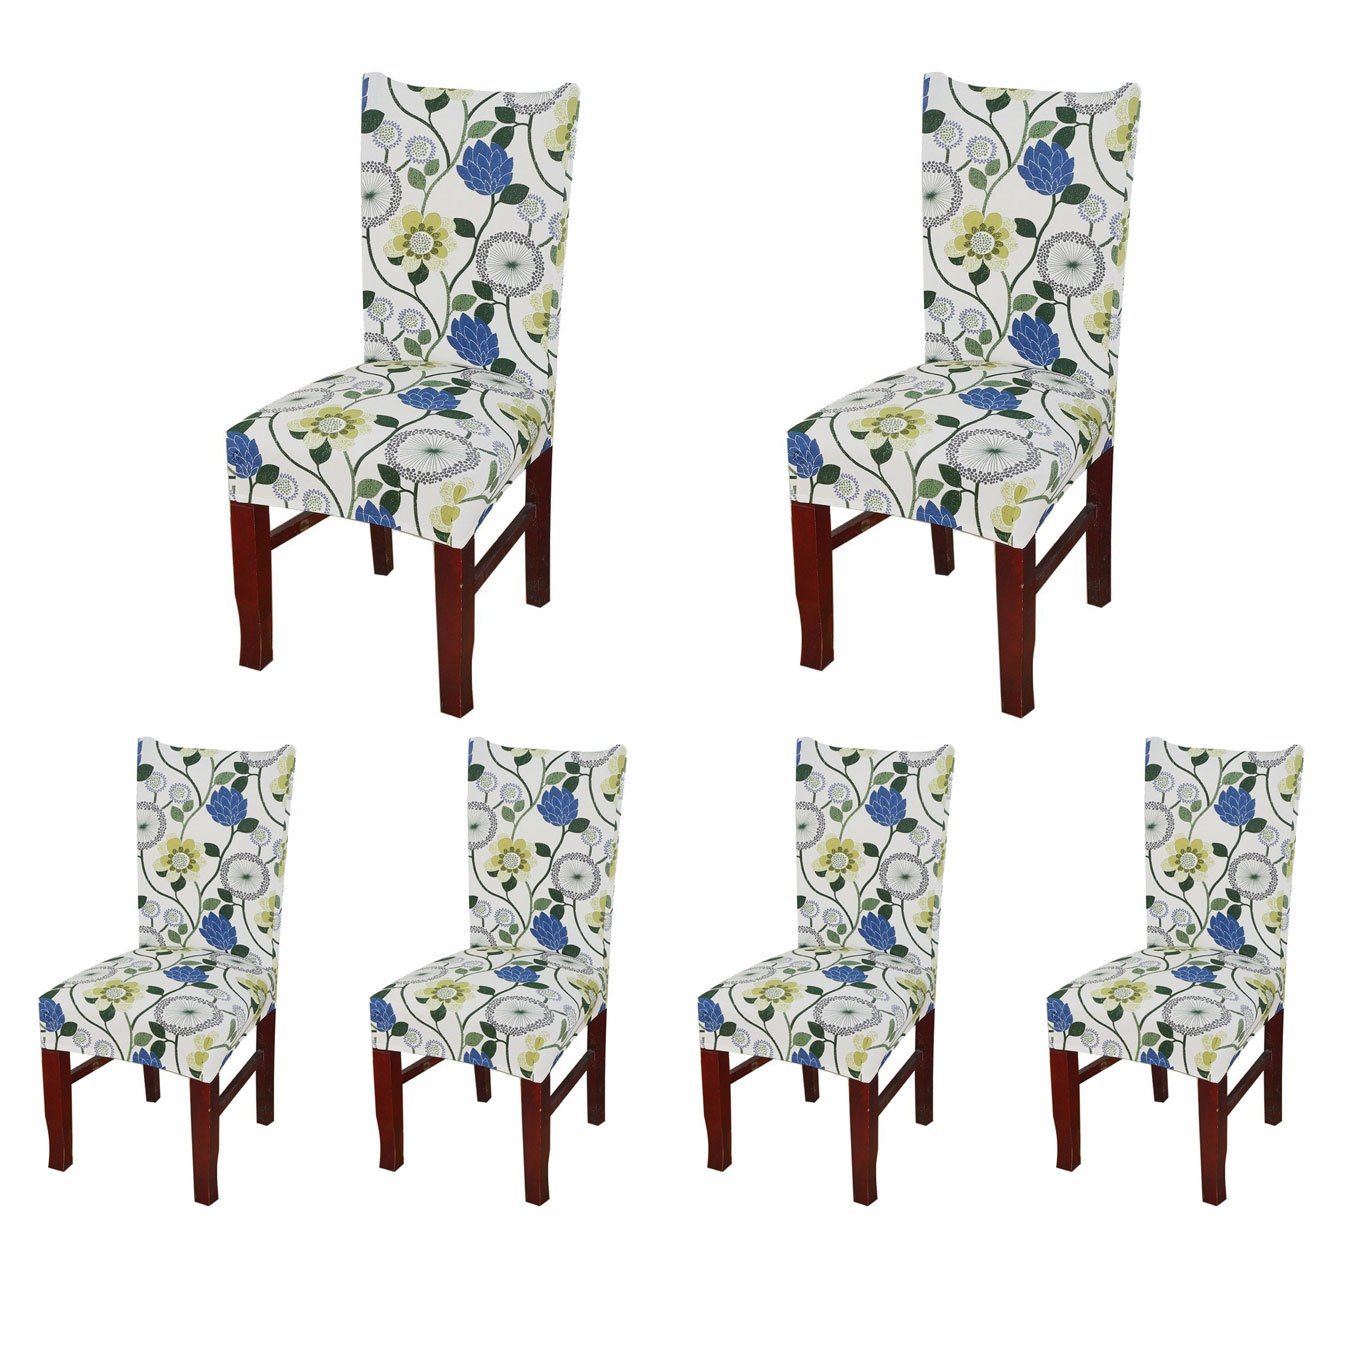 SoulFeel Set of 6 x Stretchable Dining Chair Covers, Spandex Chair Seat Protector Slipcovers for Holiday Banquet, Home Party, Hotel, Wedding Ceremony (Style 36, Floral)